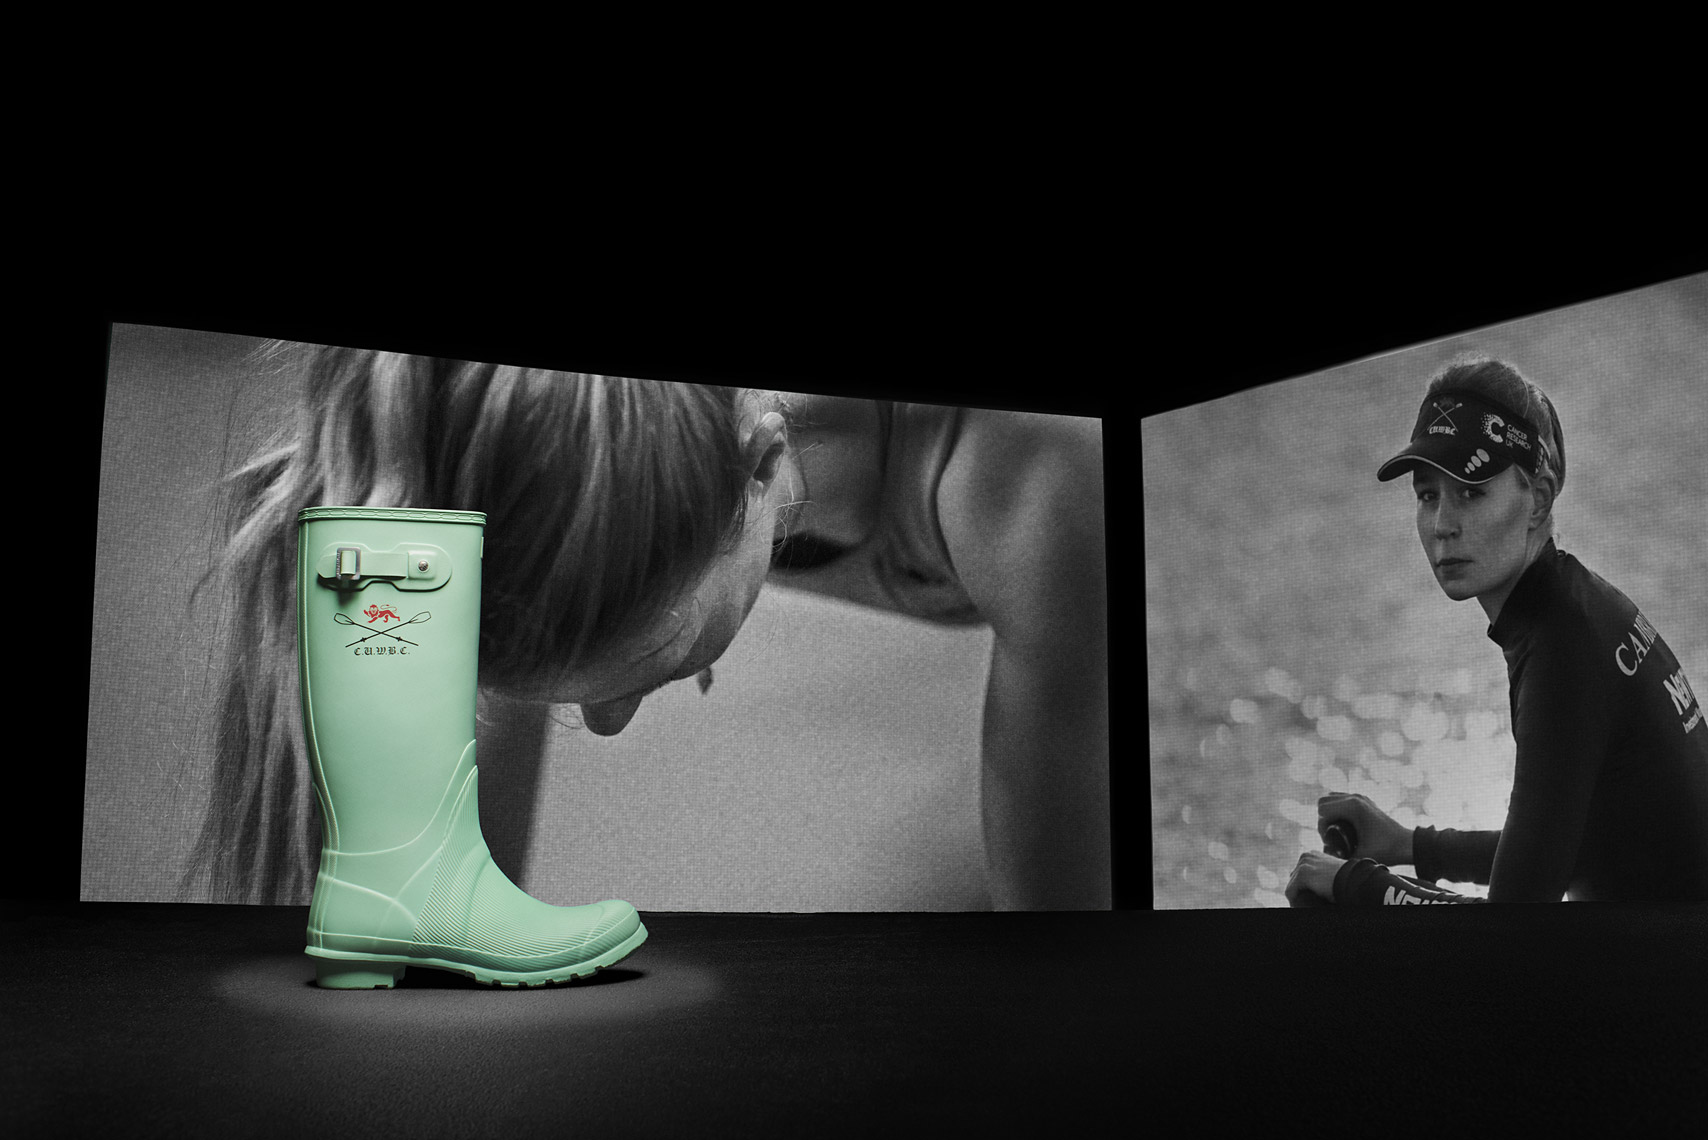 HUNTER BOOTS - Claire Lambe